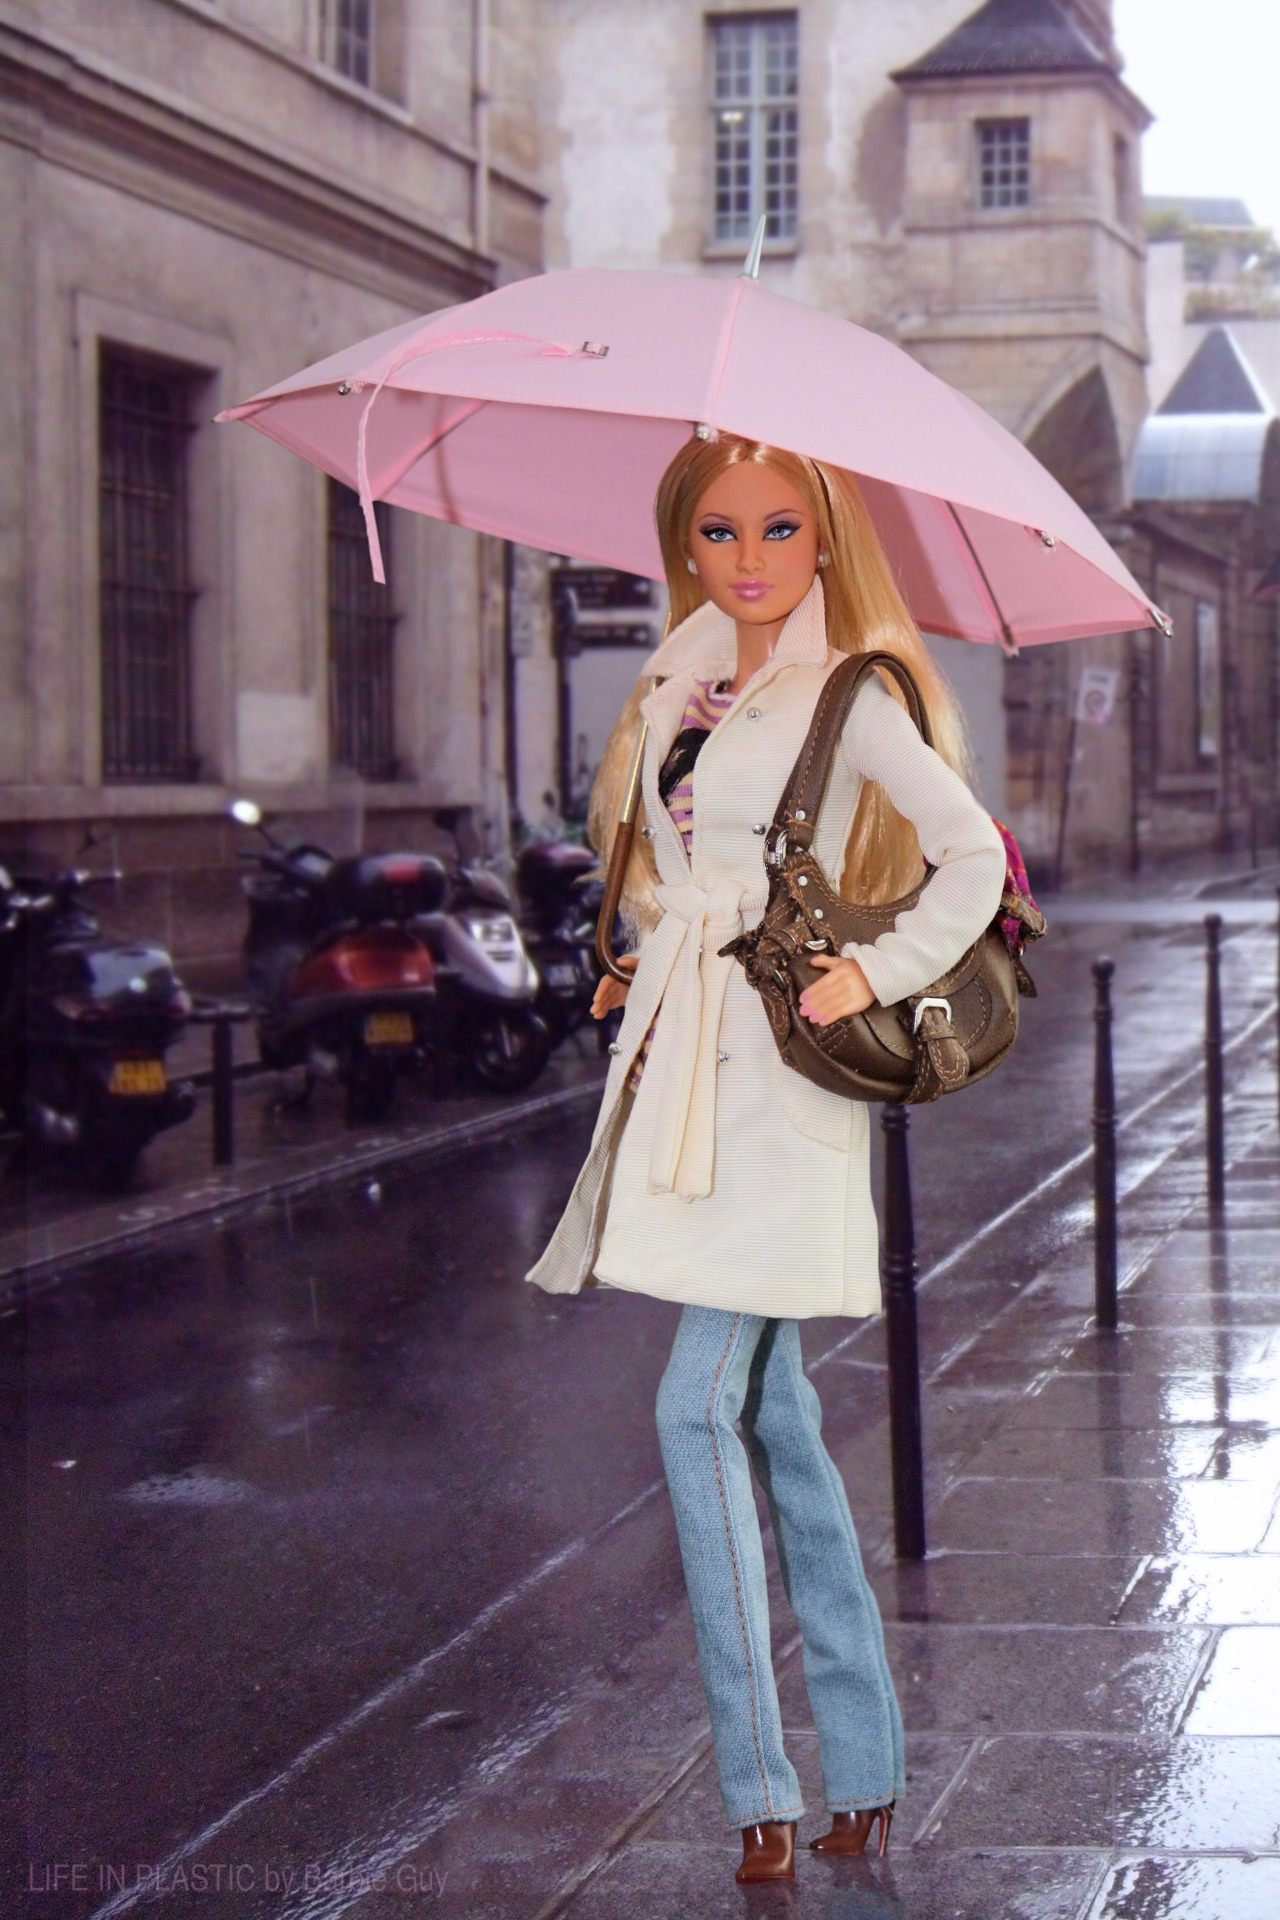 Parapluie. In this photo: Barbie® Basics Model No. 04 Collection 003.